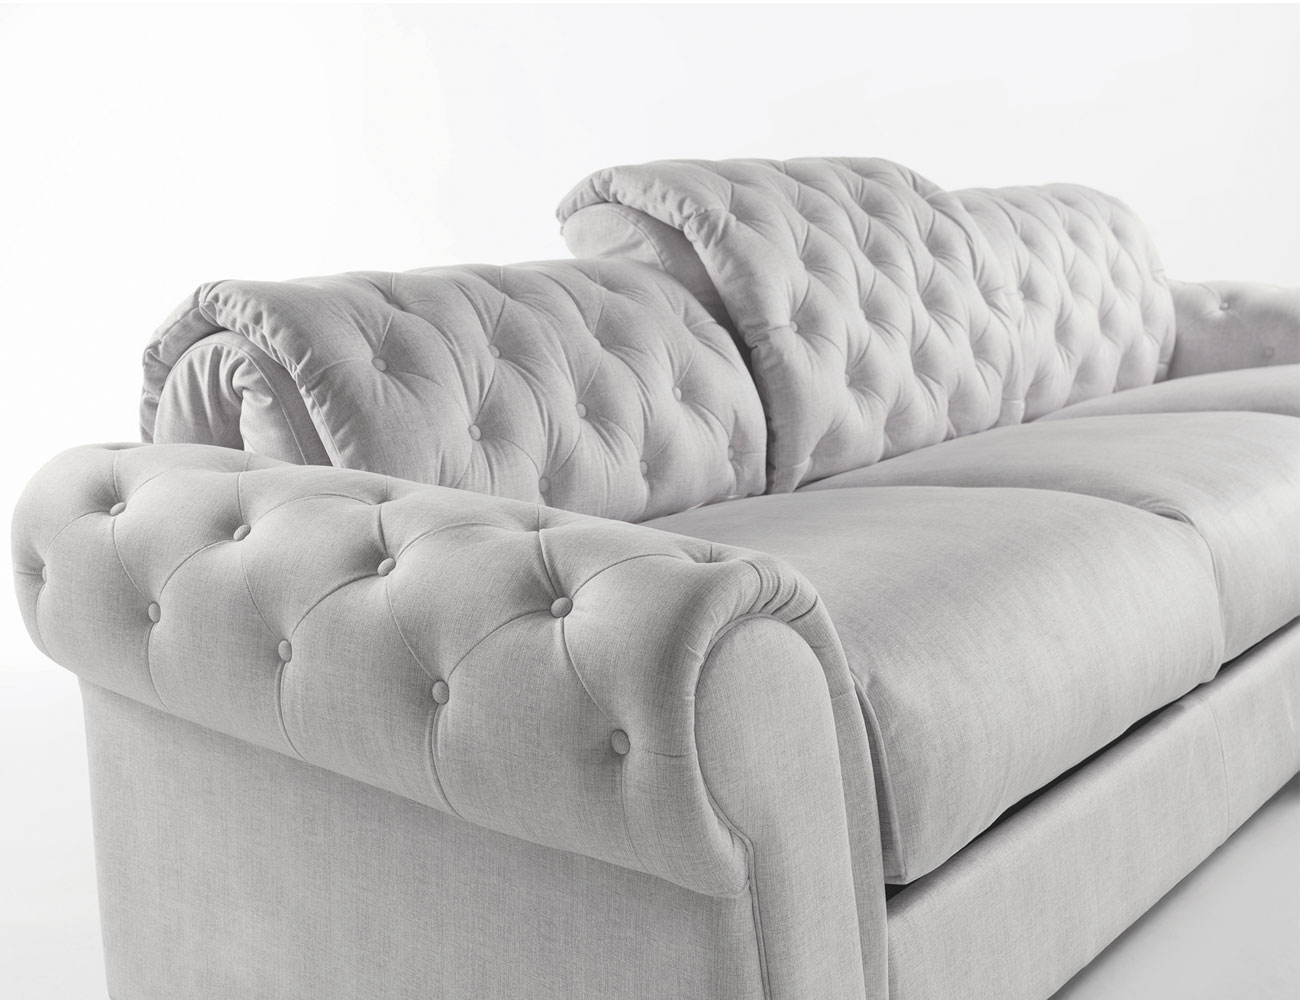 Sofa chaiselongue gran lujo decorativo capitone blanco tela 144